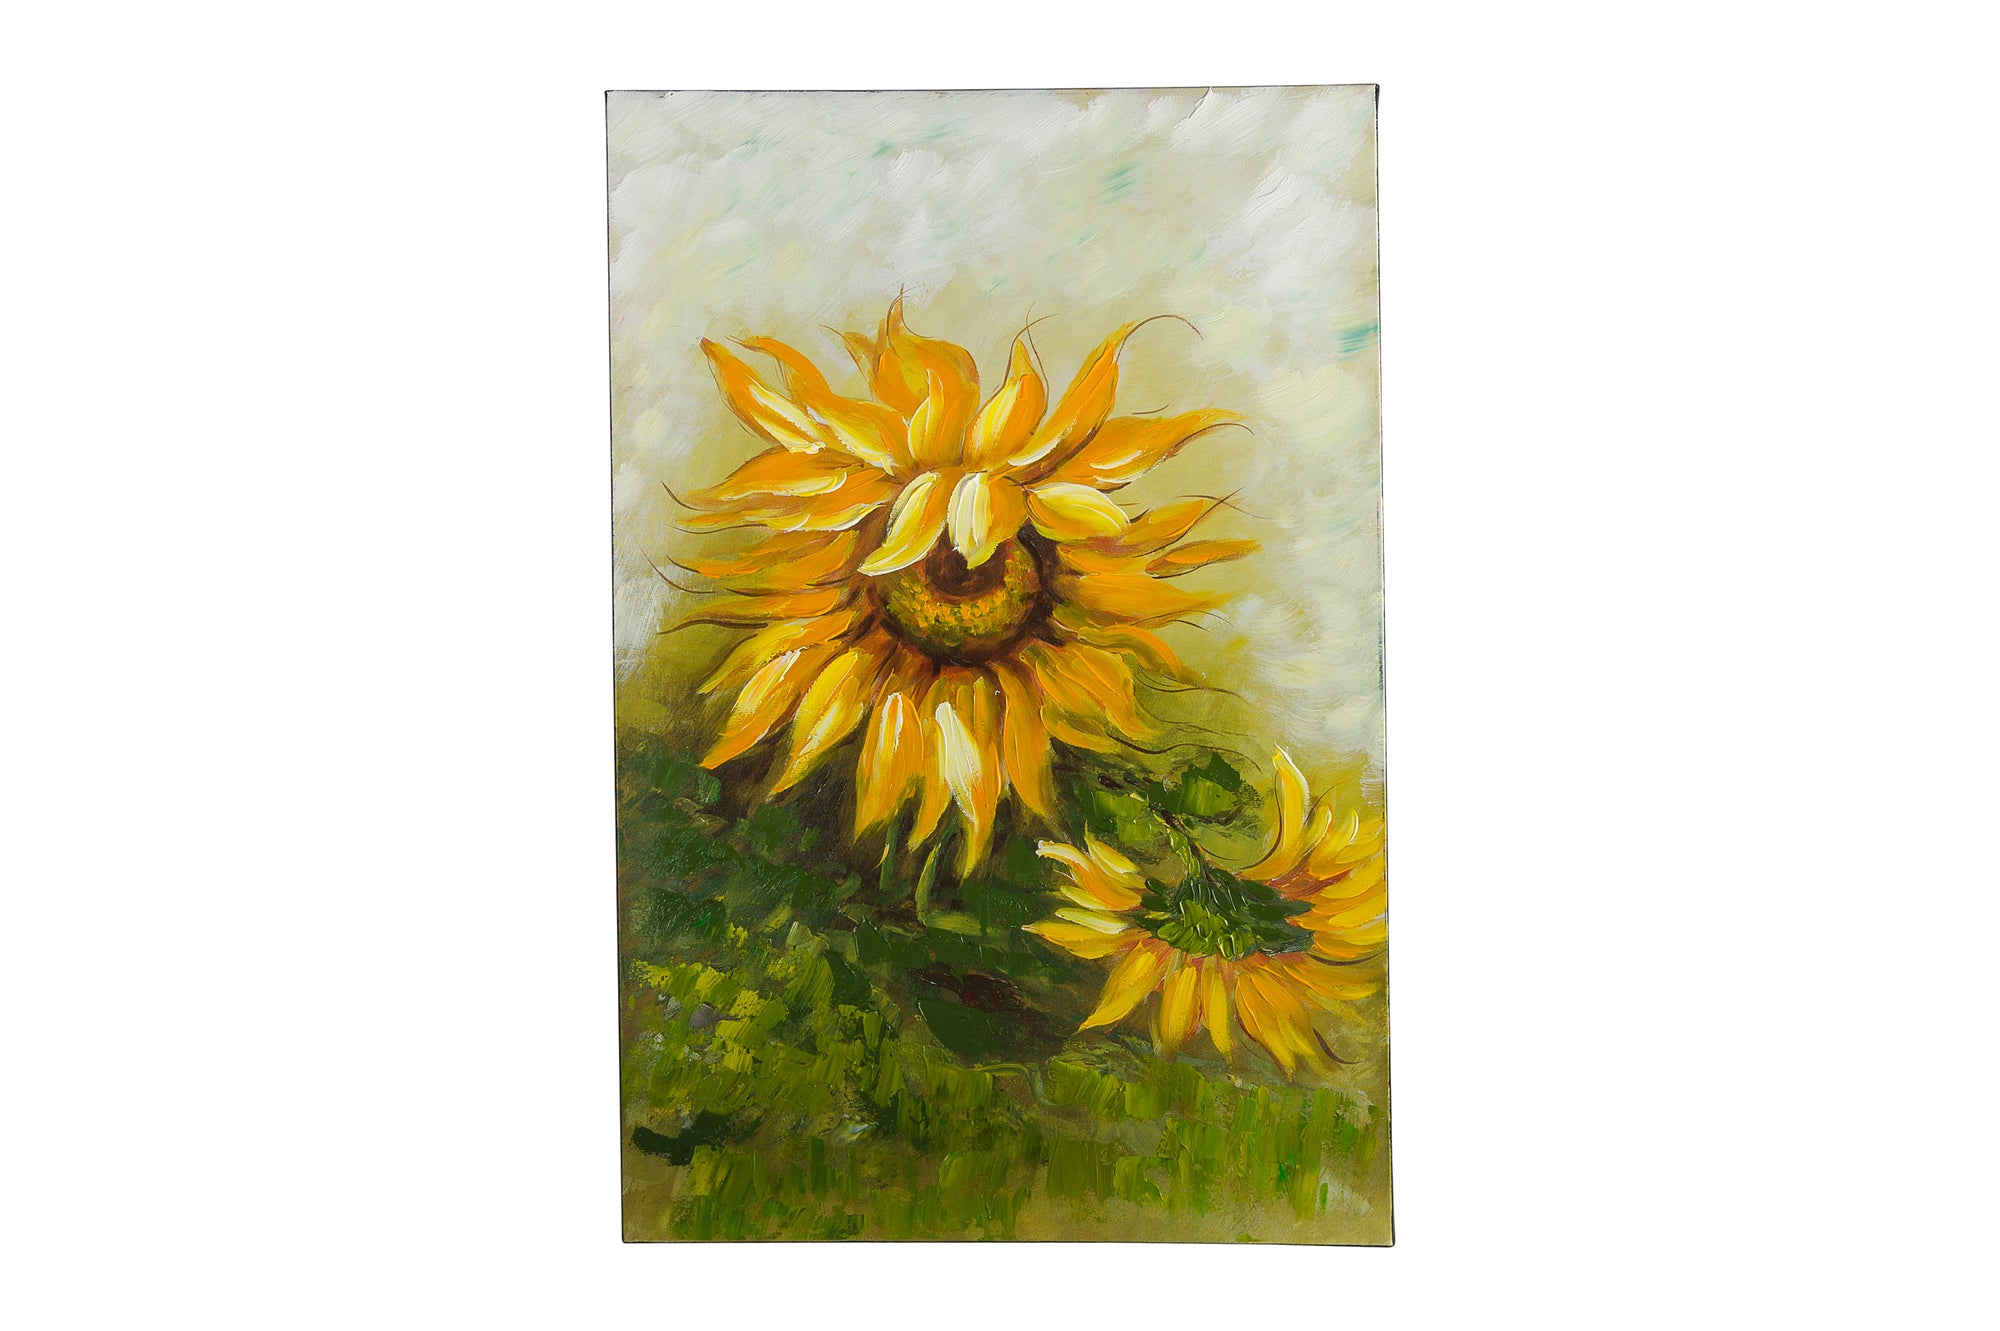 sunflower pair in the breeze hand painted wall art on canvas - Fervor + Hue